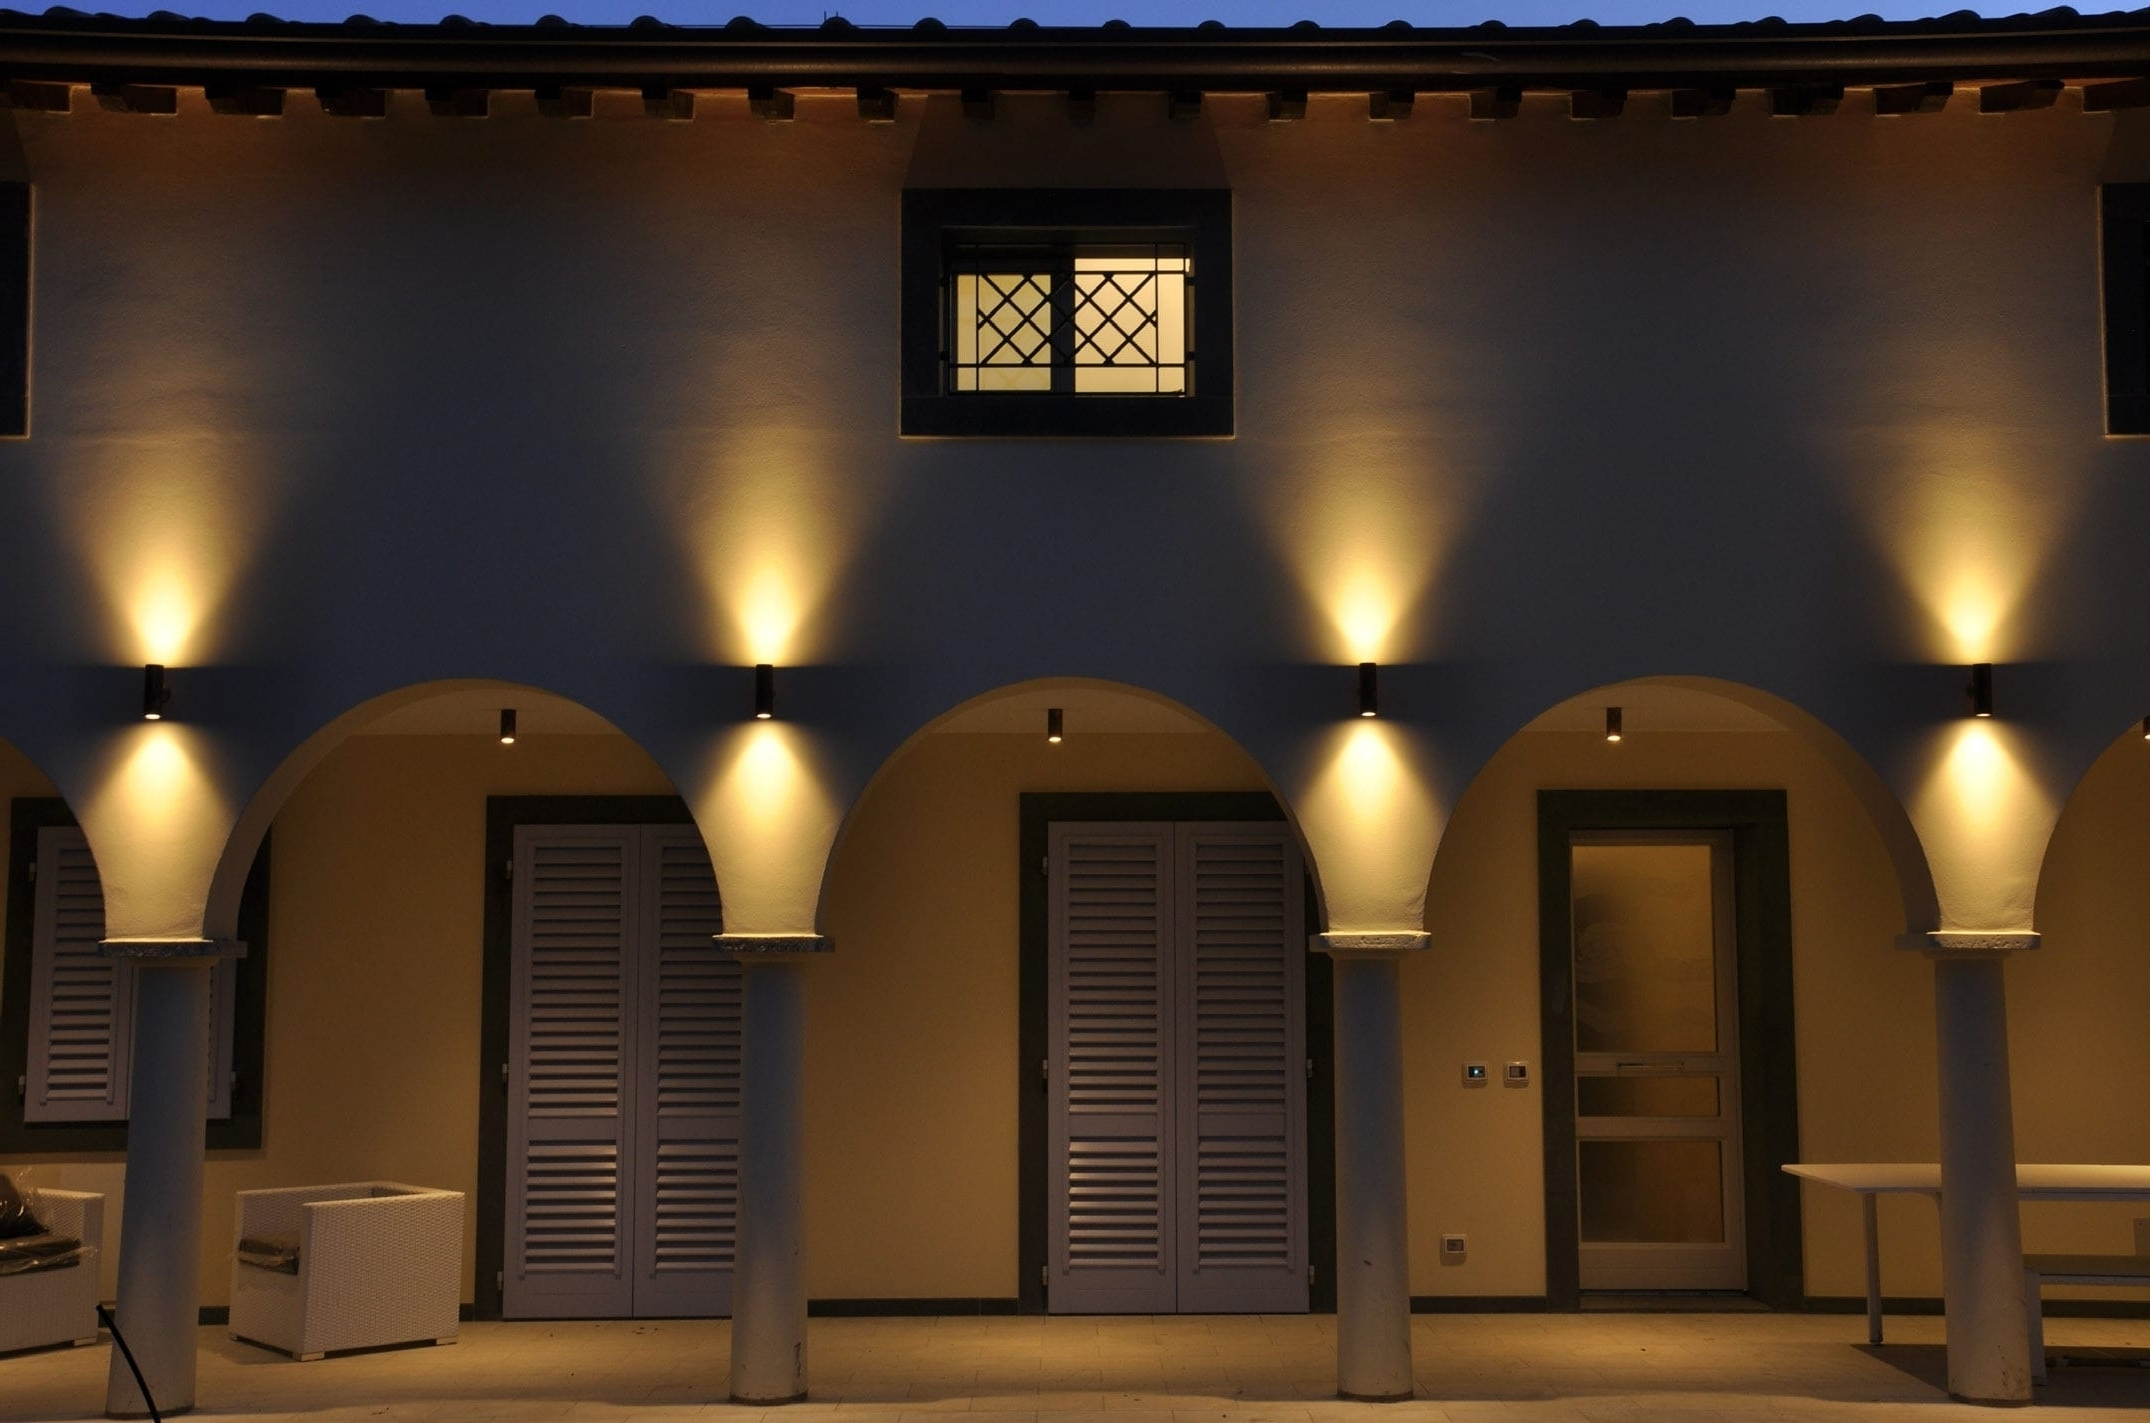 Outdoor Sconces Up Down Lighting – Outdoor Designs In Popular Outdoor Wall Sconce Up Down Lighting (View 14 of 20)